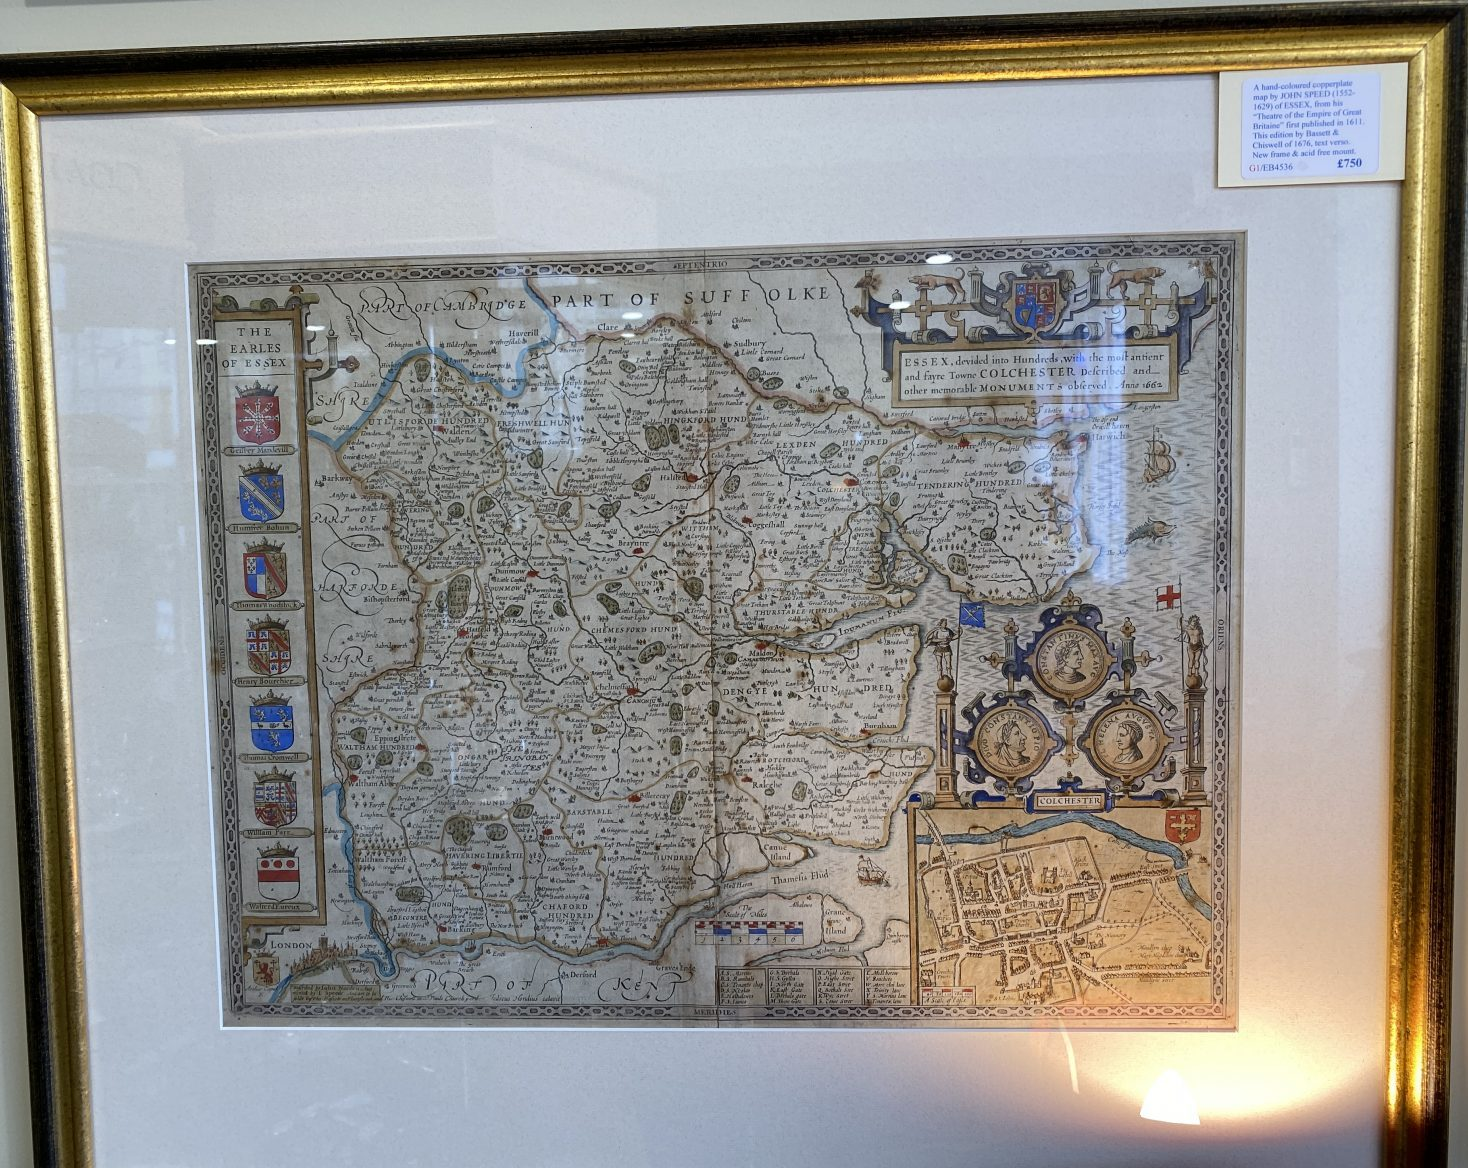 G1 - A Hand-coloured copperplate map of ESSEX by John Speed (1552-1629), from his Theatre of the Empire of Great Britaine. This edition published by Bassett & Chiswell in 1676, text verso. New frame and acid free mount.   £750